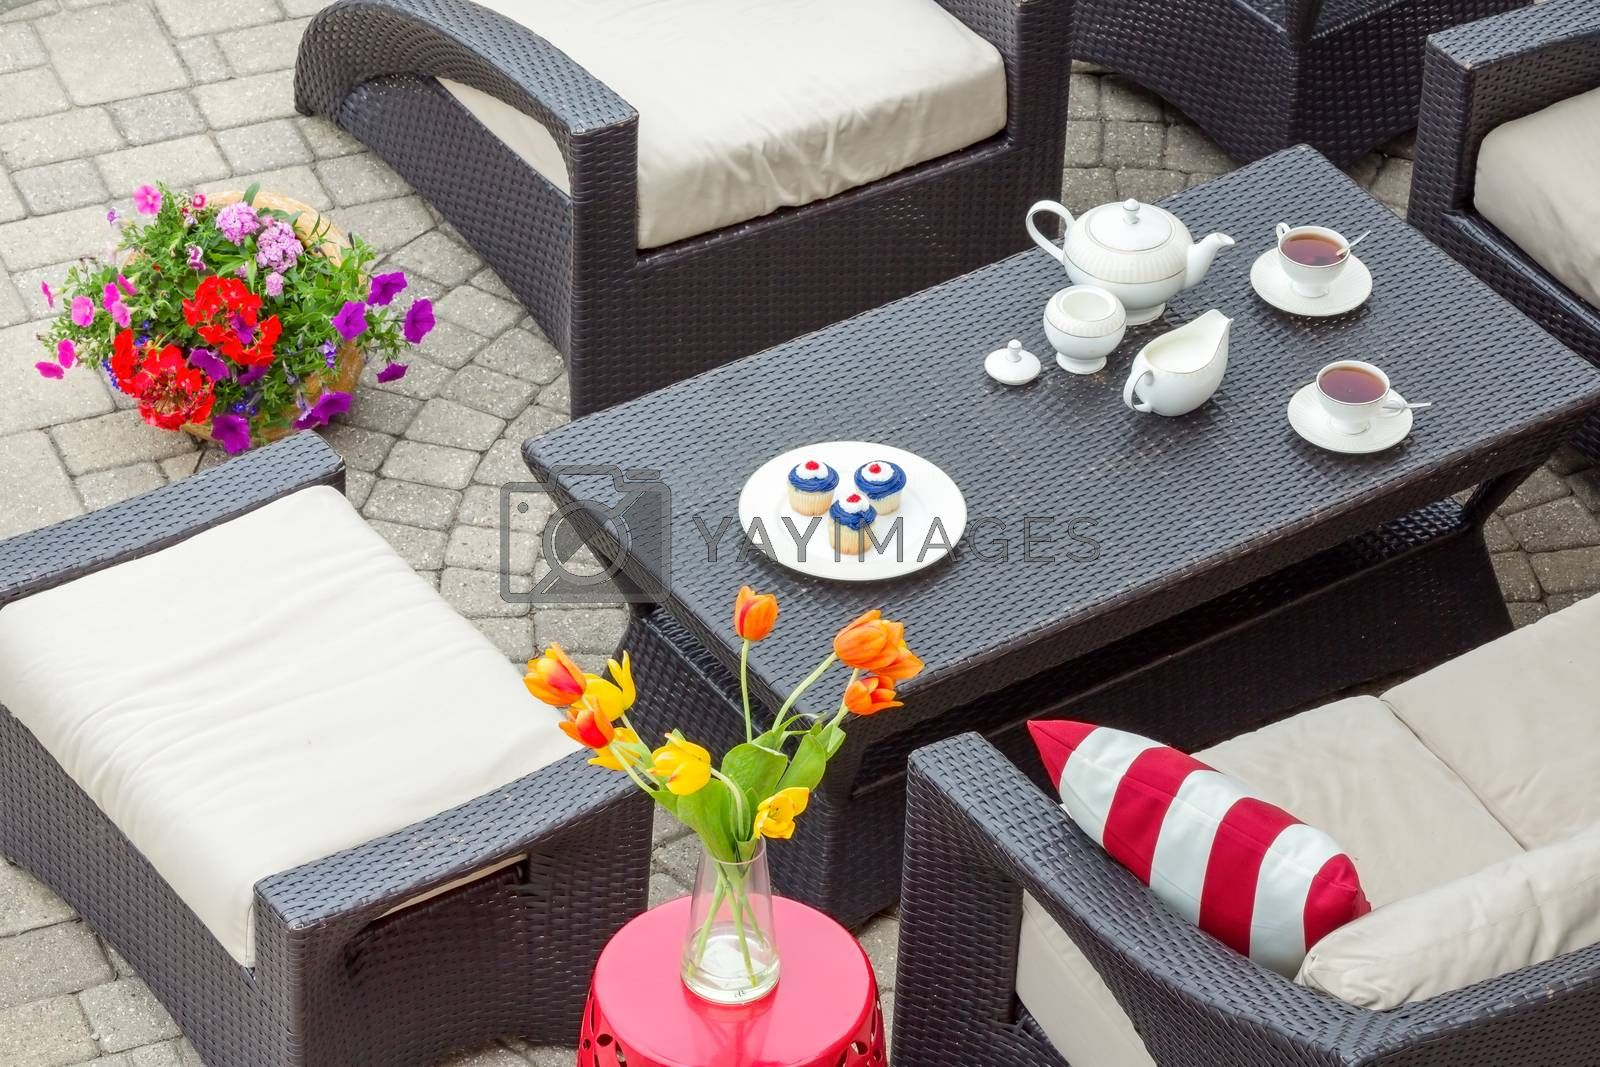 4th July tea served on an outdoor patio with patriotic cupcakes and cups of tea on a table surrounded by comfortable armchairs and a stool with spring tulips in a vase